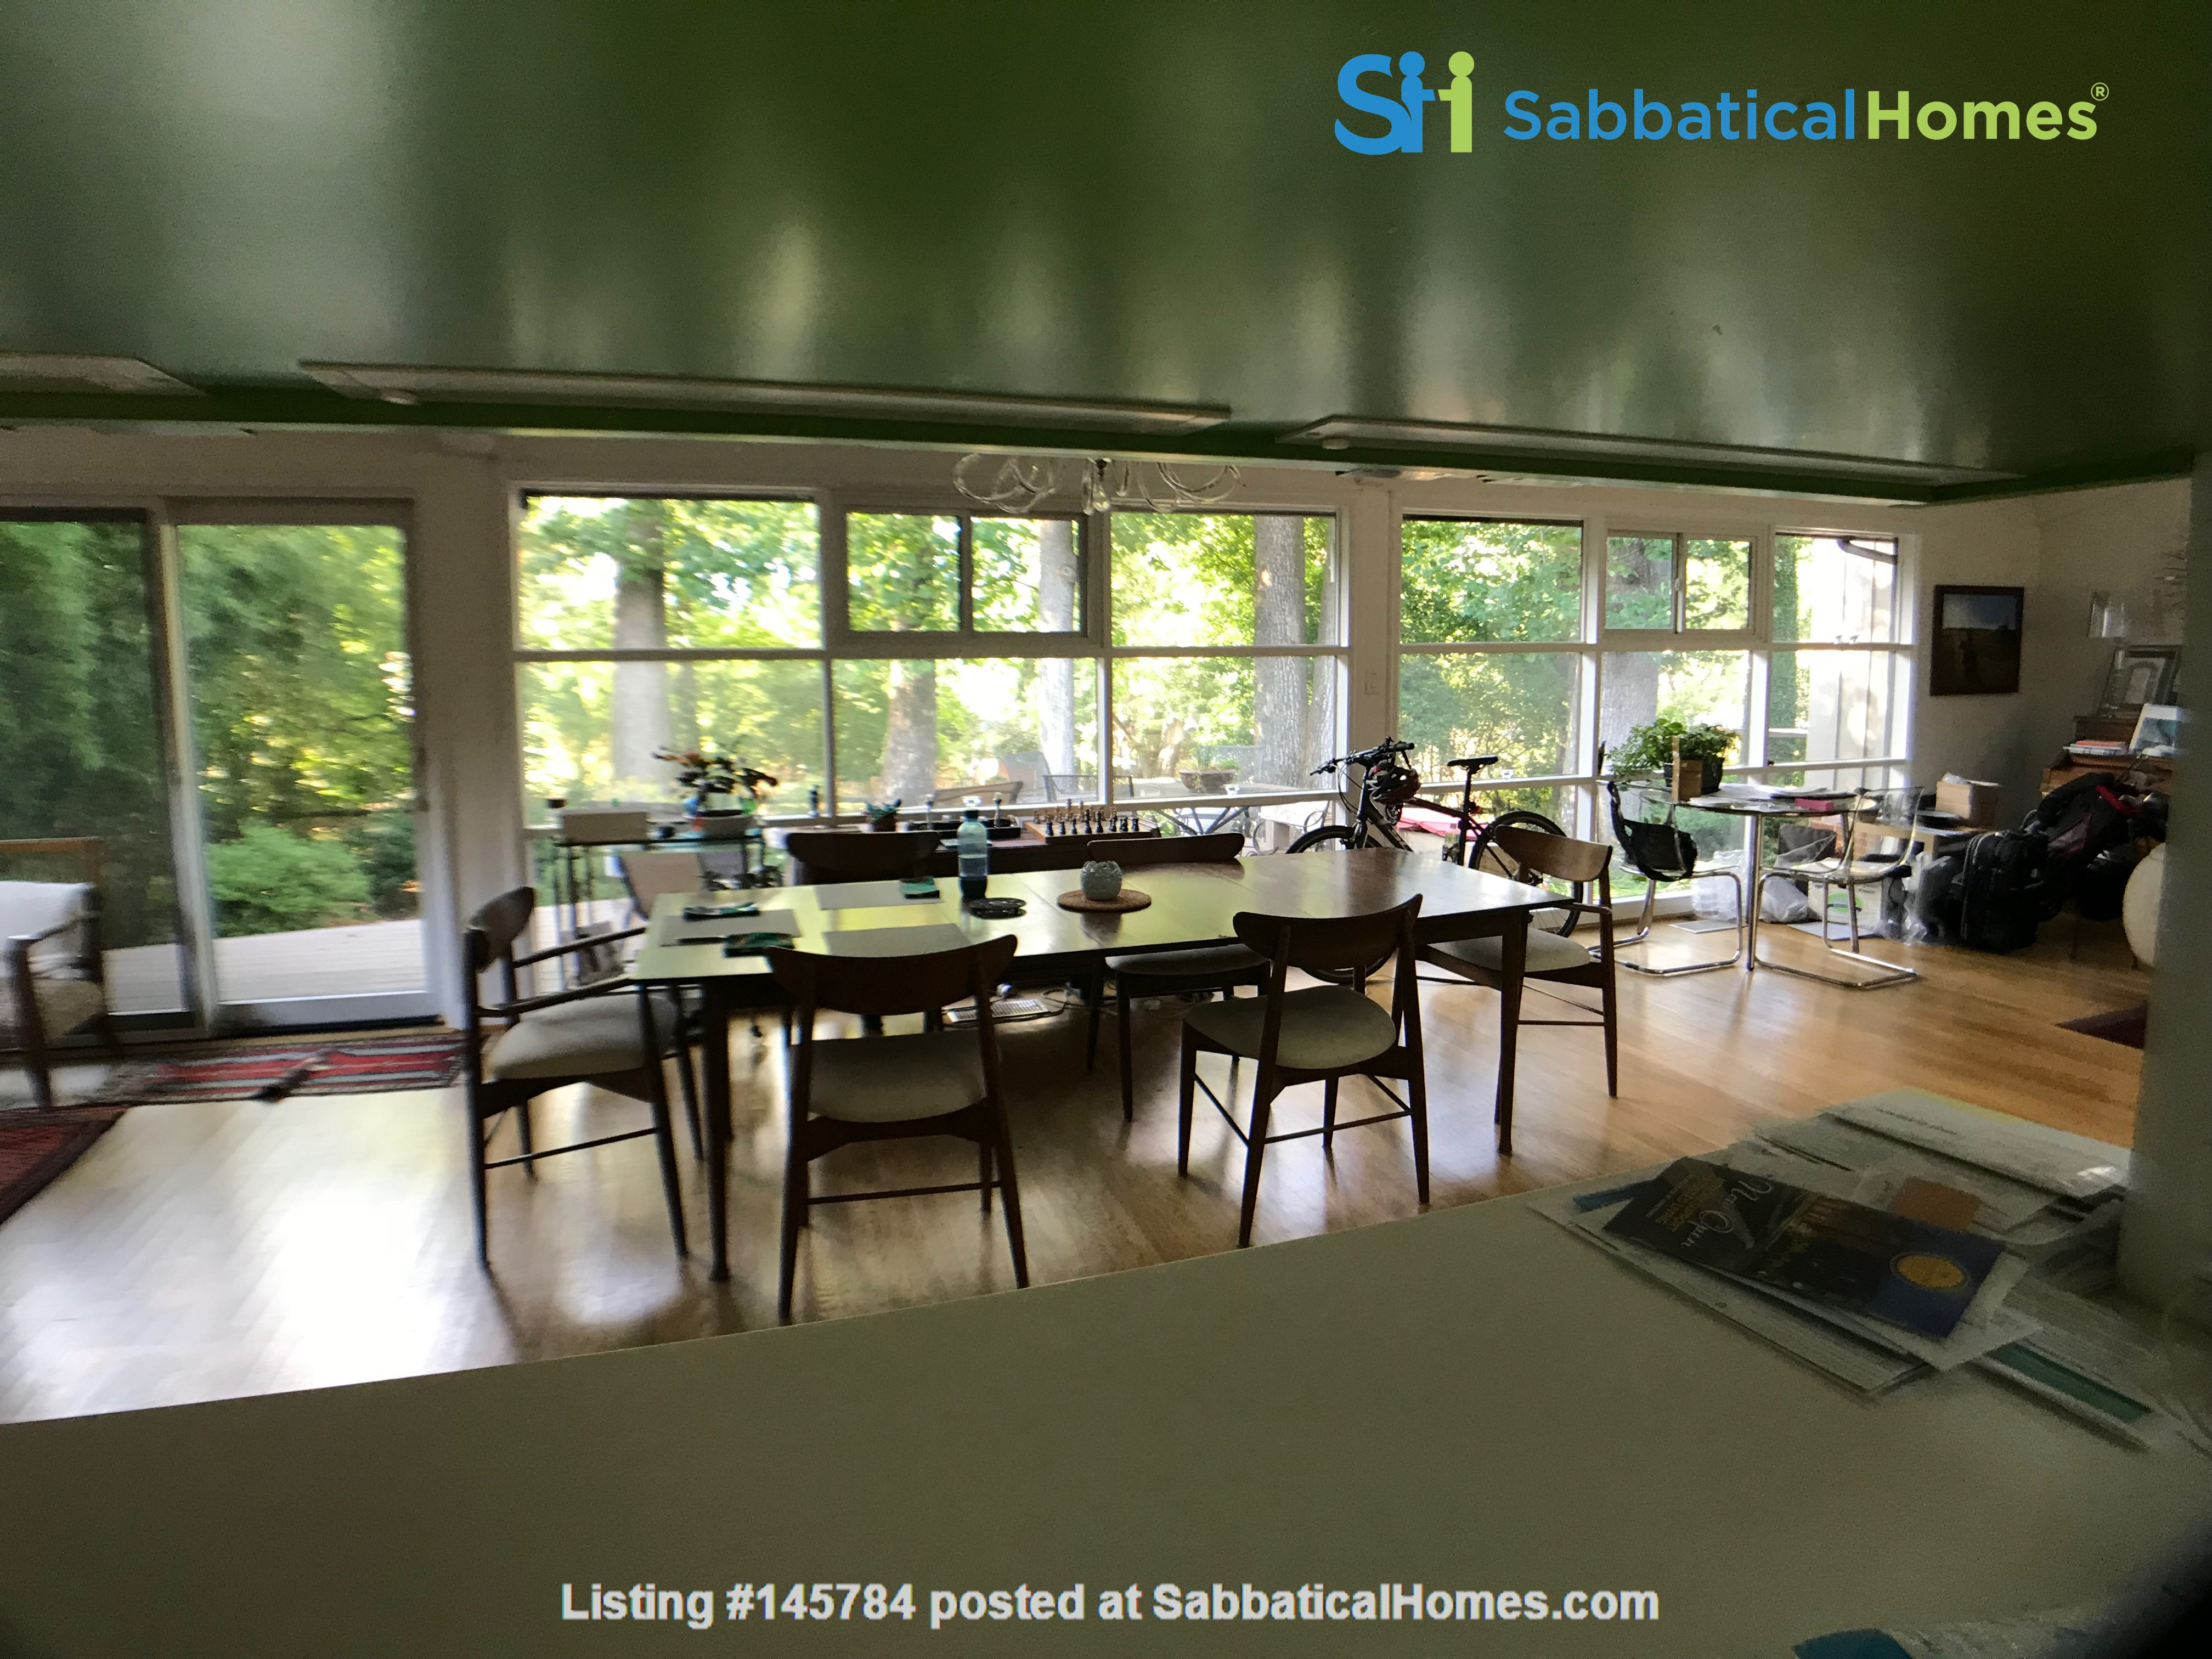 Renovated mid-century modern home (furnished) in desirable Chevy Chase, MD Home Rental in Chevy Chase 2